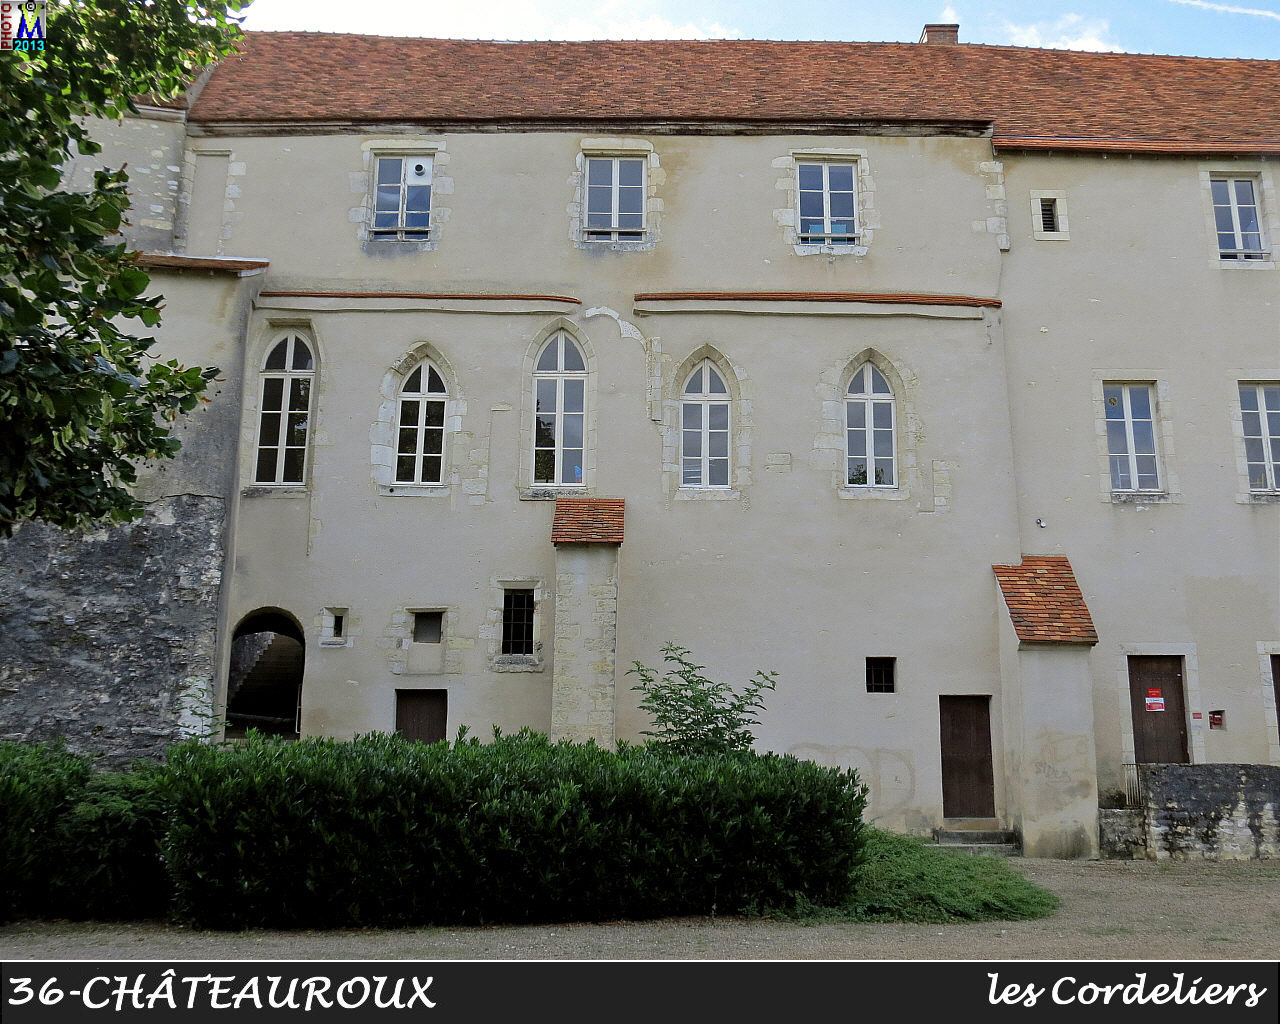 36CHATEAUROUX_cordeliers_112.jpg